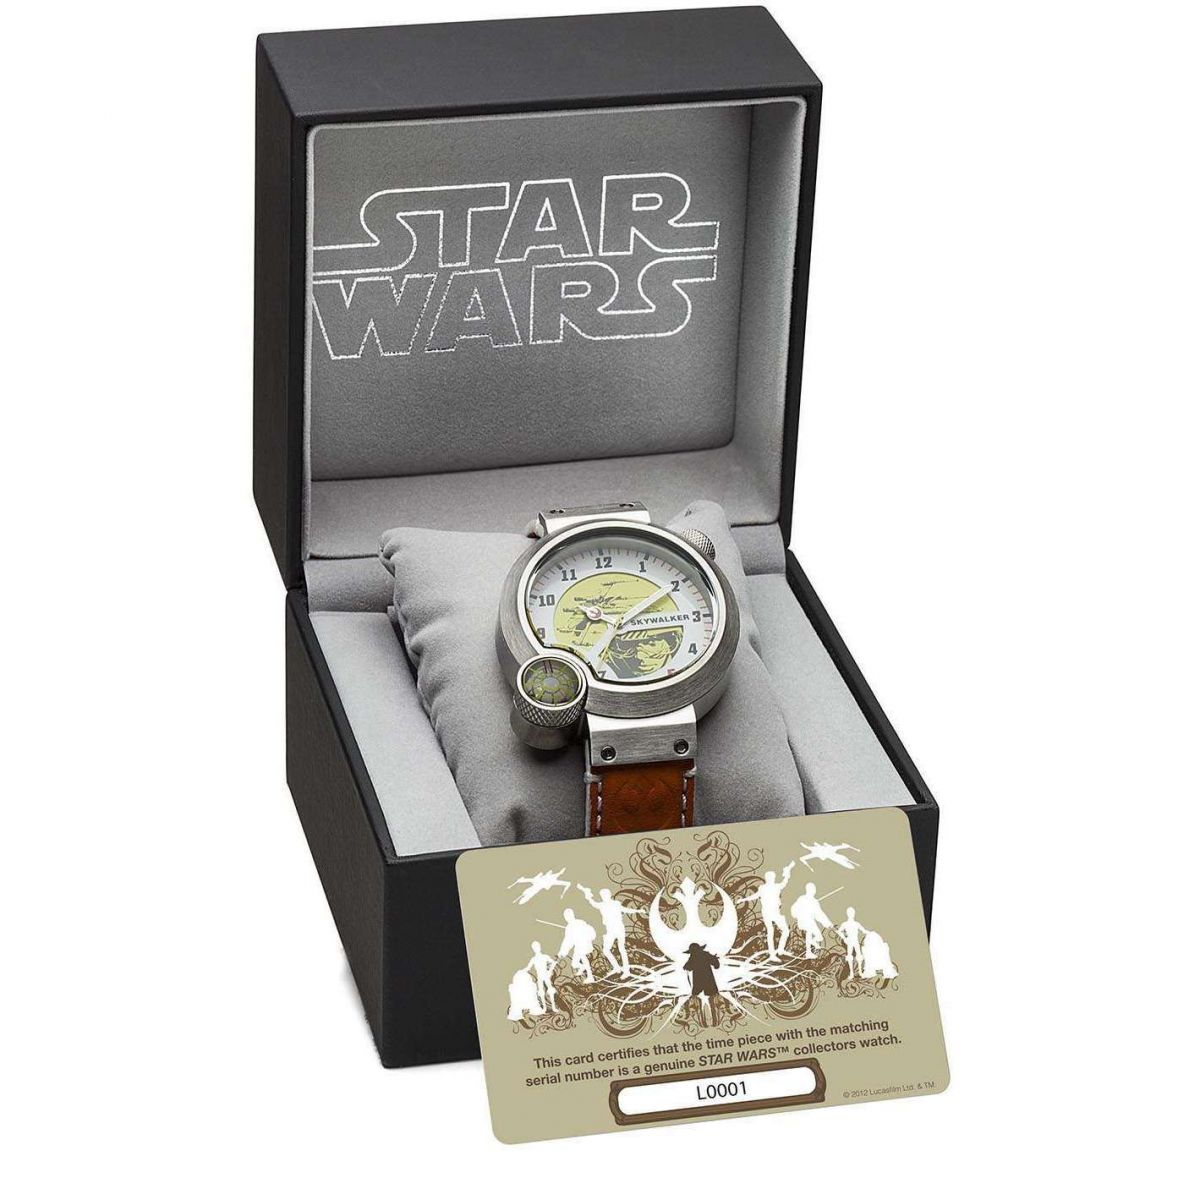 hommes star wars collectionneurs dition limit e montre star138. Black Bedroom Furniture Sets. Home Design Ideas